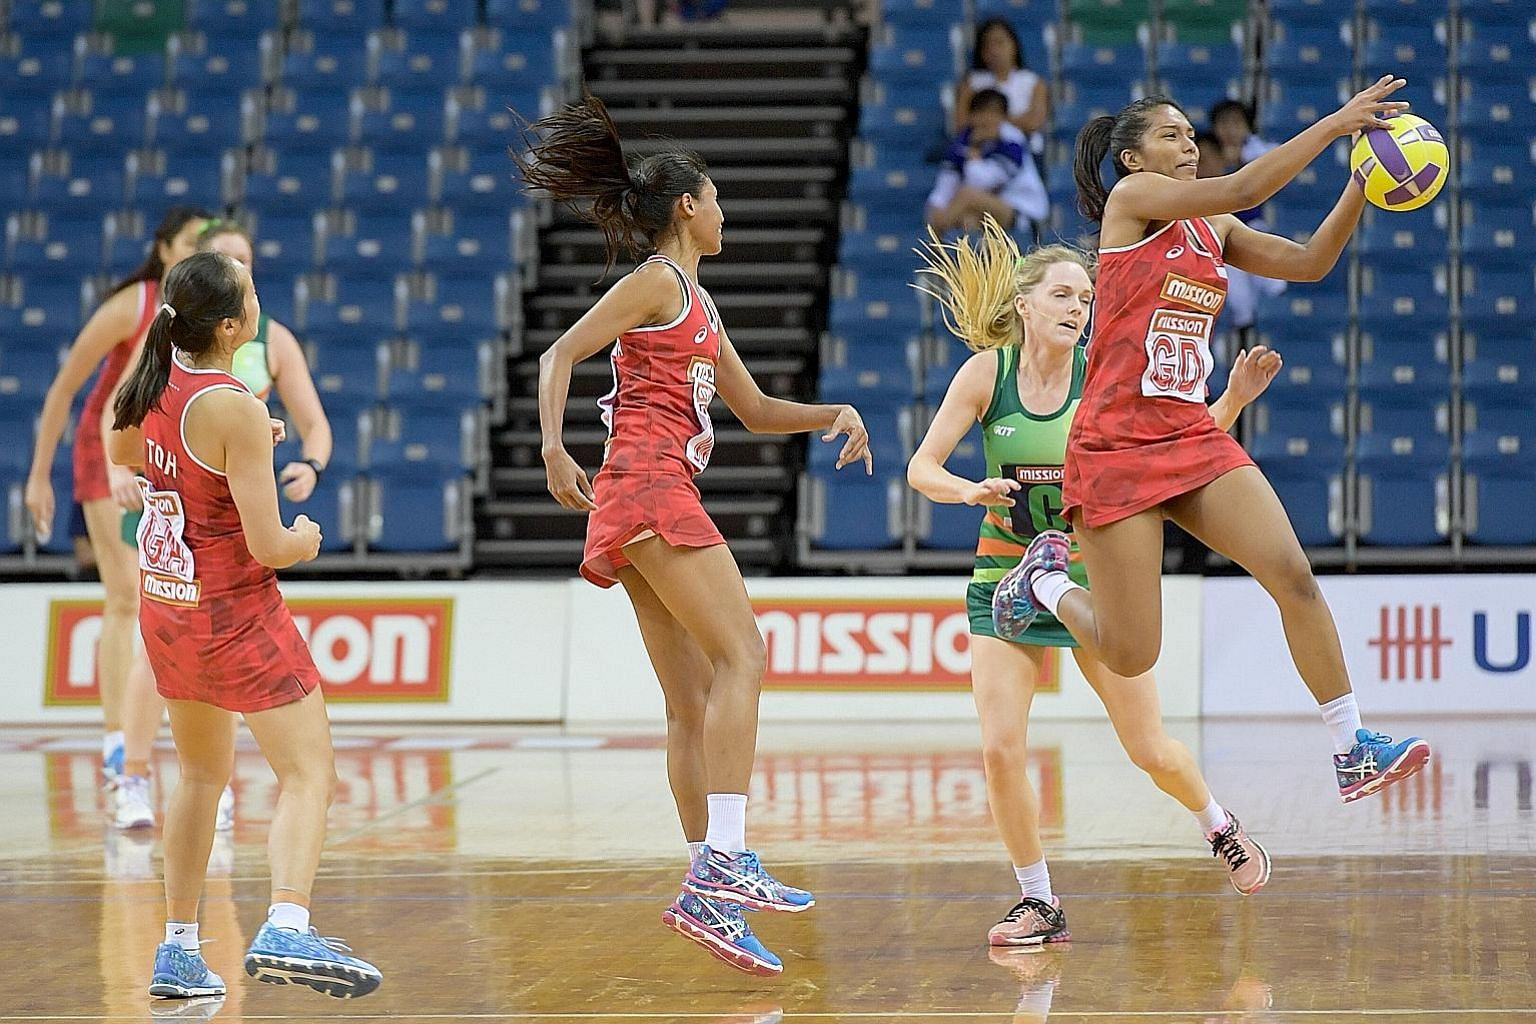 Singapore's goal defender Aqilah Andin in possession during the opening netball match of the Mission Foods Nations Cup at the OCBC Arena yesterday. World No. 19 Singapore lost 53-54 to 22nd-ranked Ireland, after the latter fought back from a third-qu